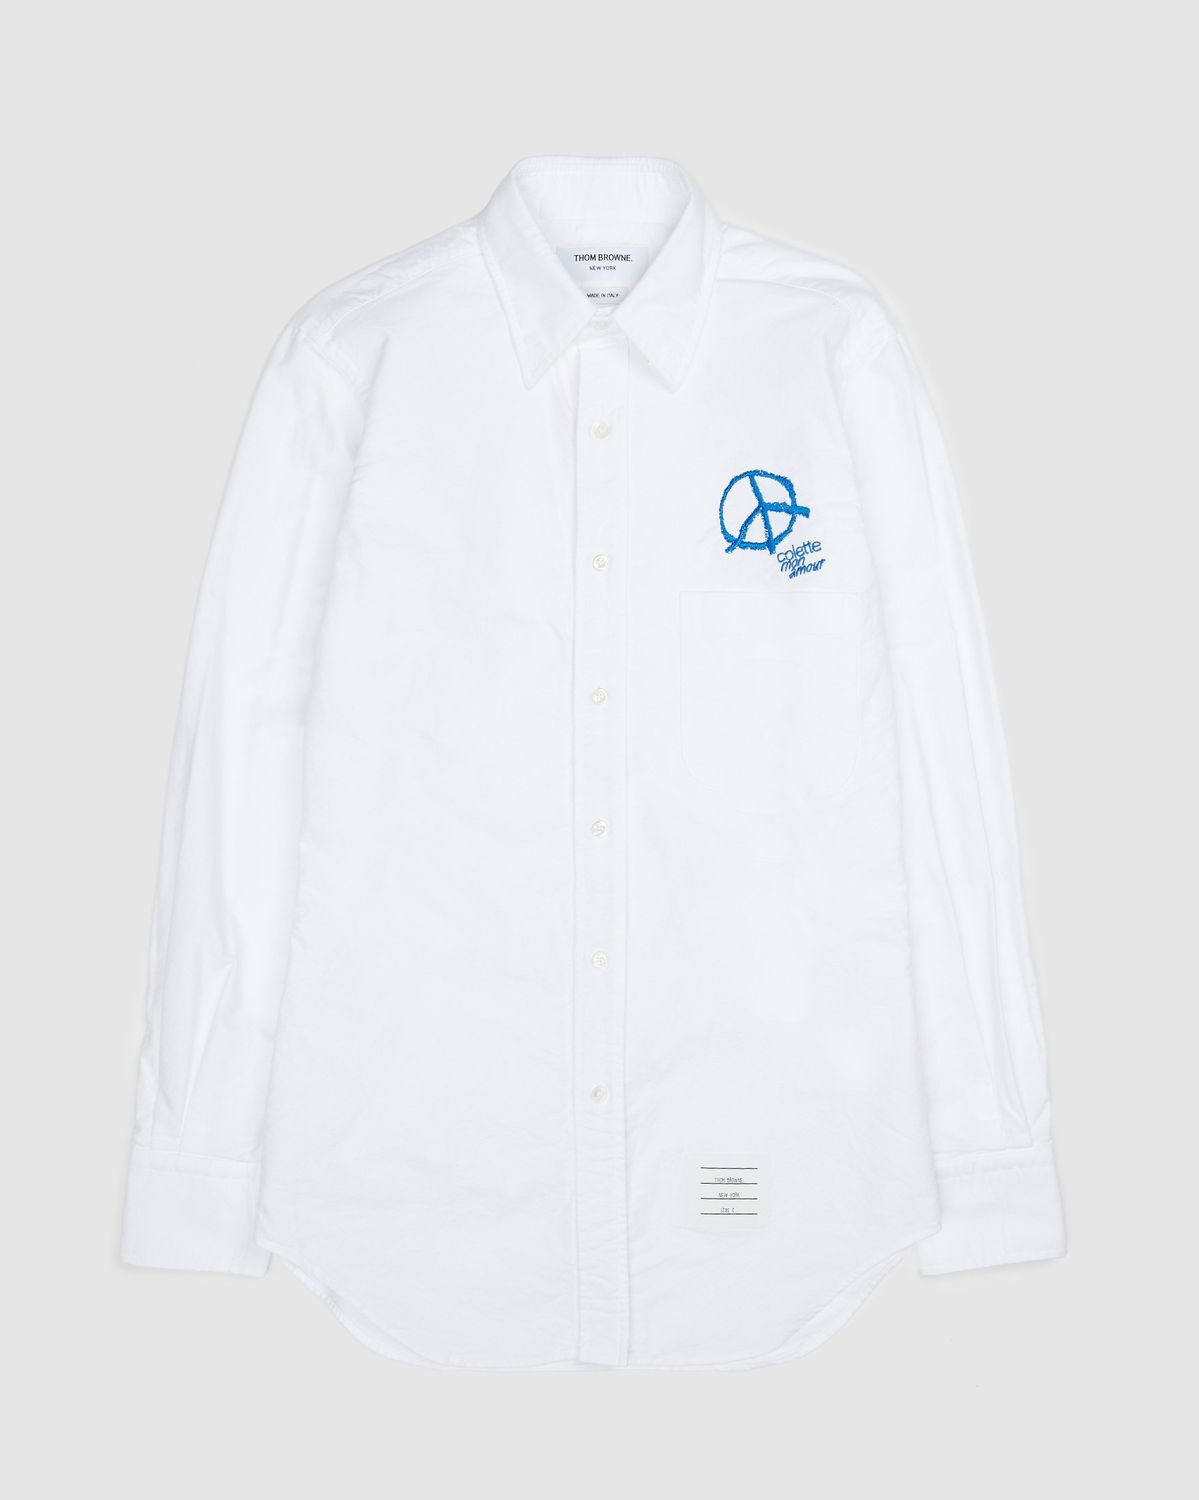 Colette Mon Amour x Thom Browne — White Peace Classic Shirt - Image 1